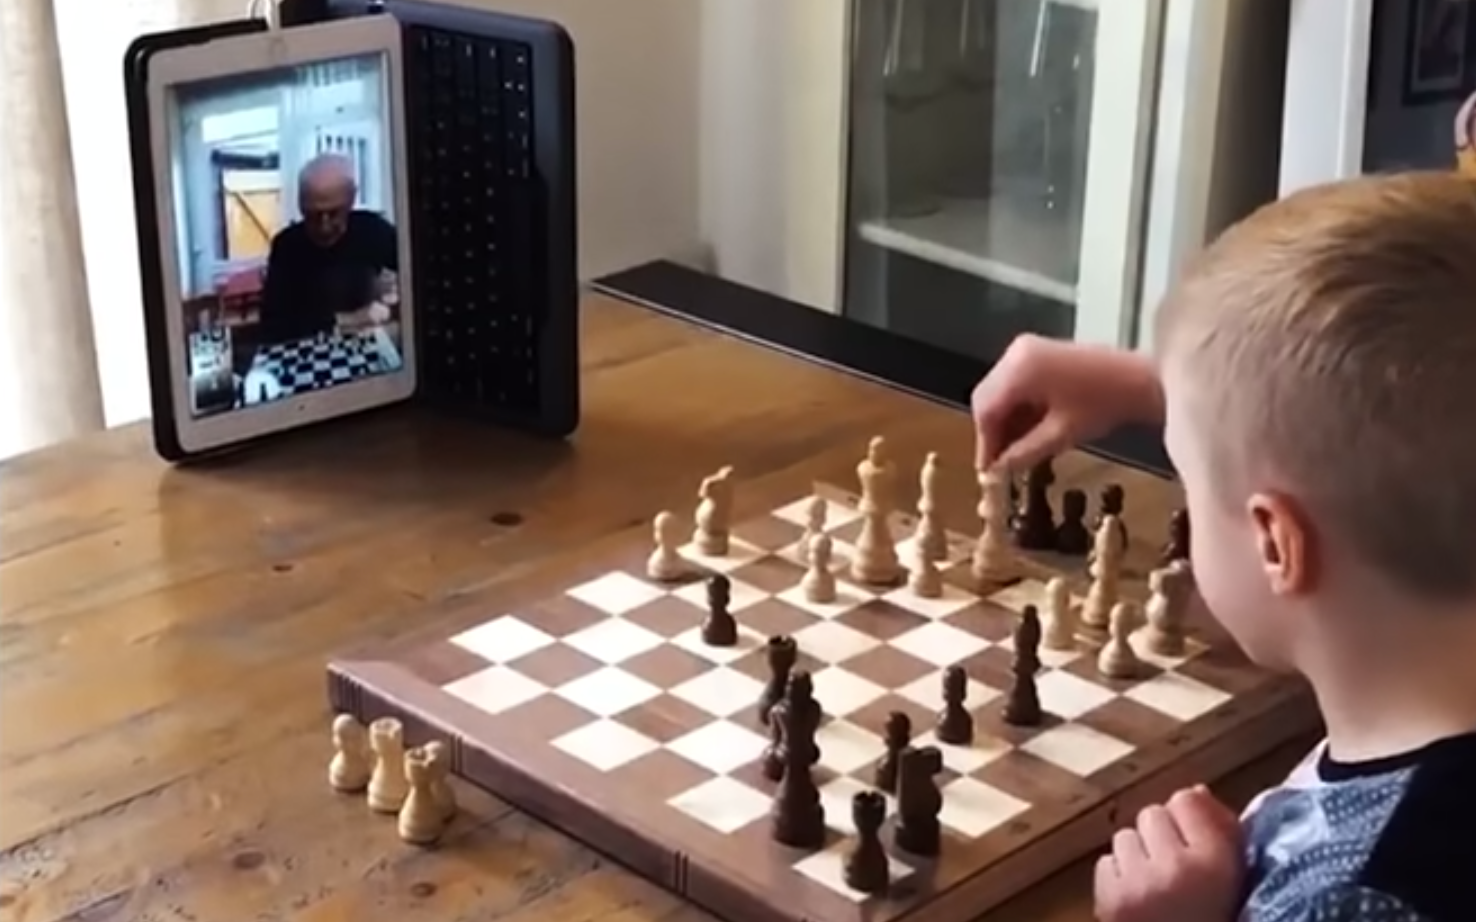 A young boy plays chess with his grandparent via video call on a tablet